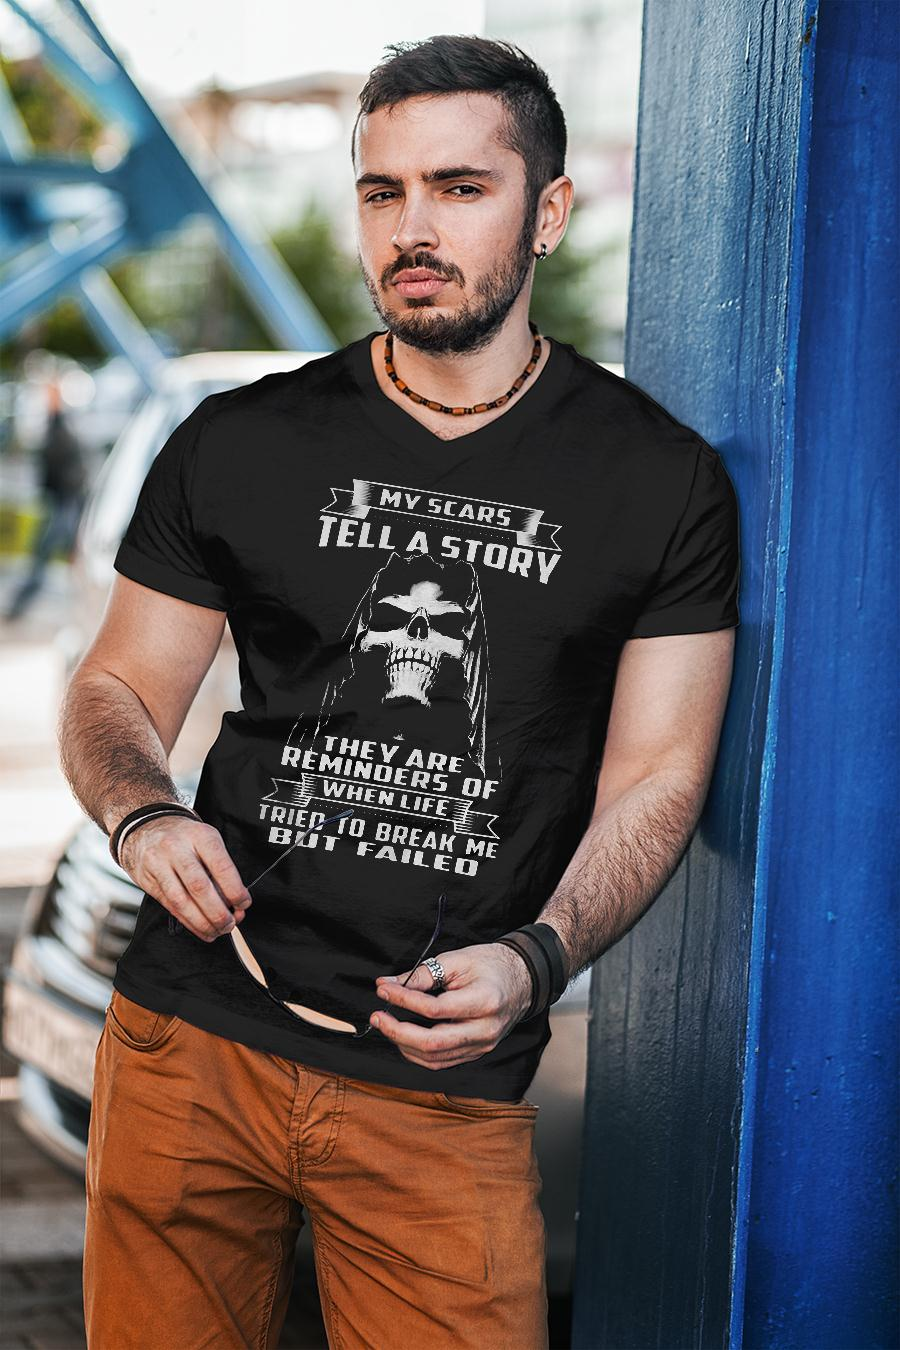 My scars tell a story shirt unisex